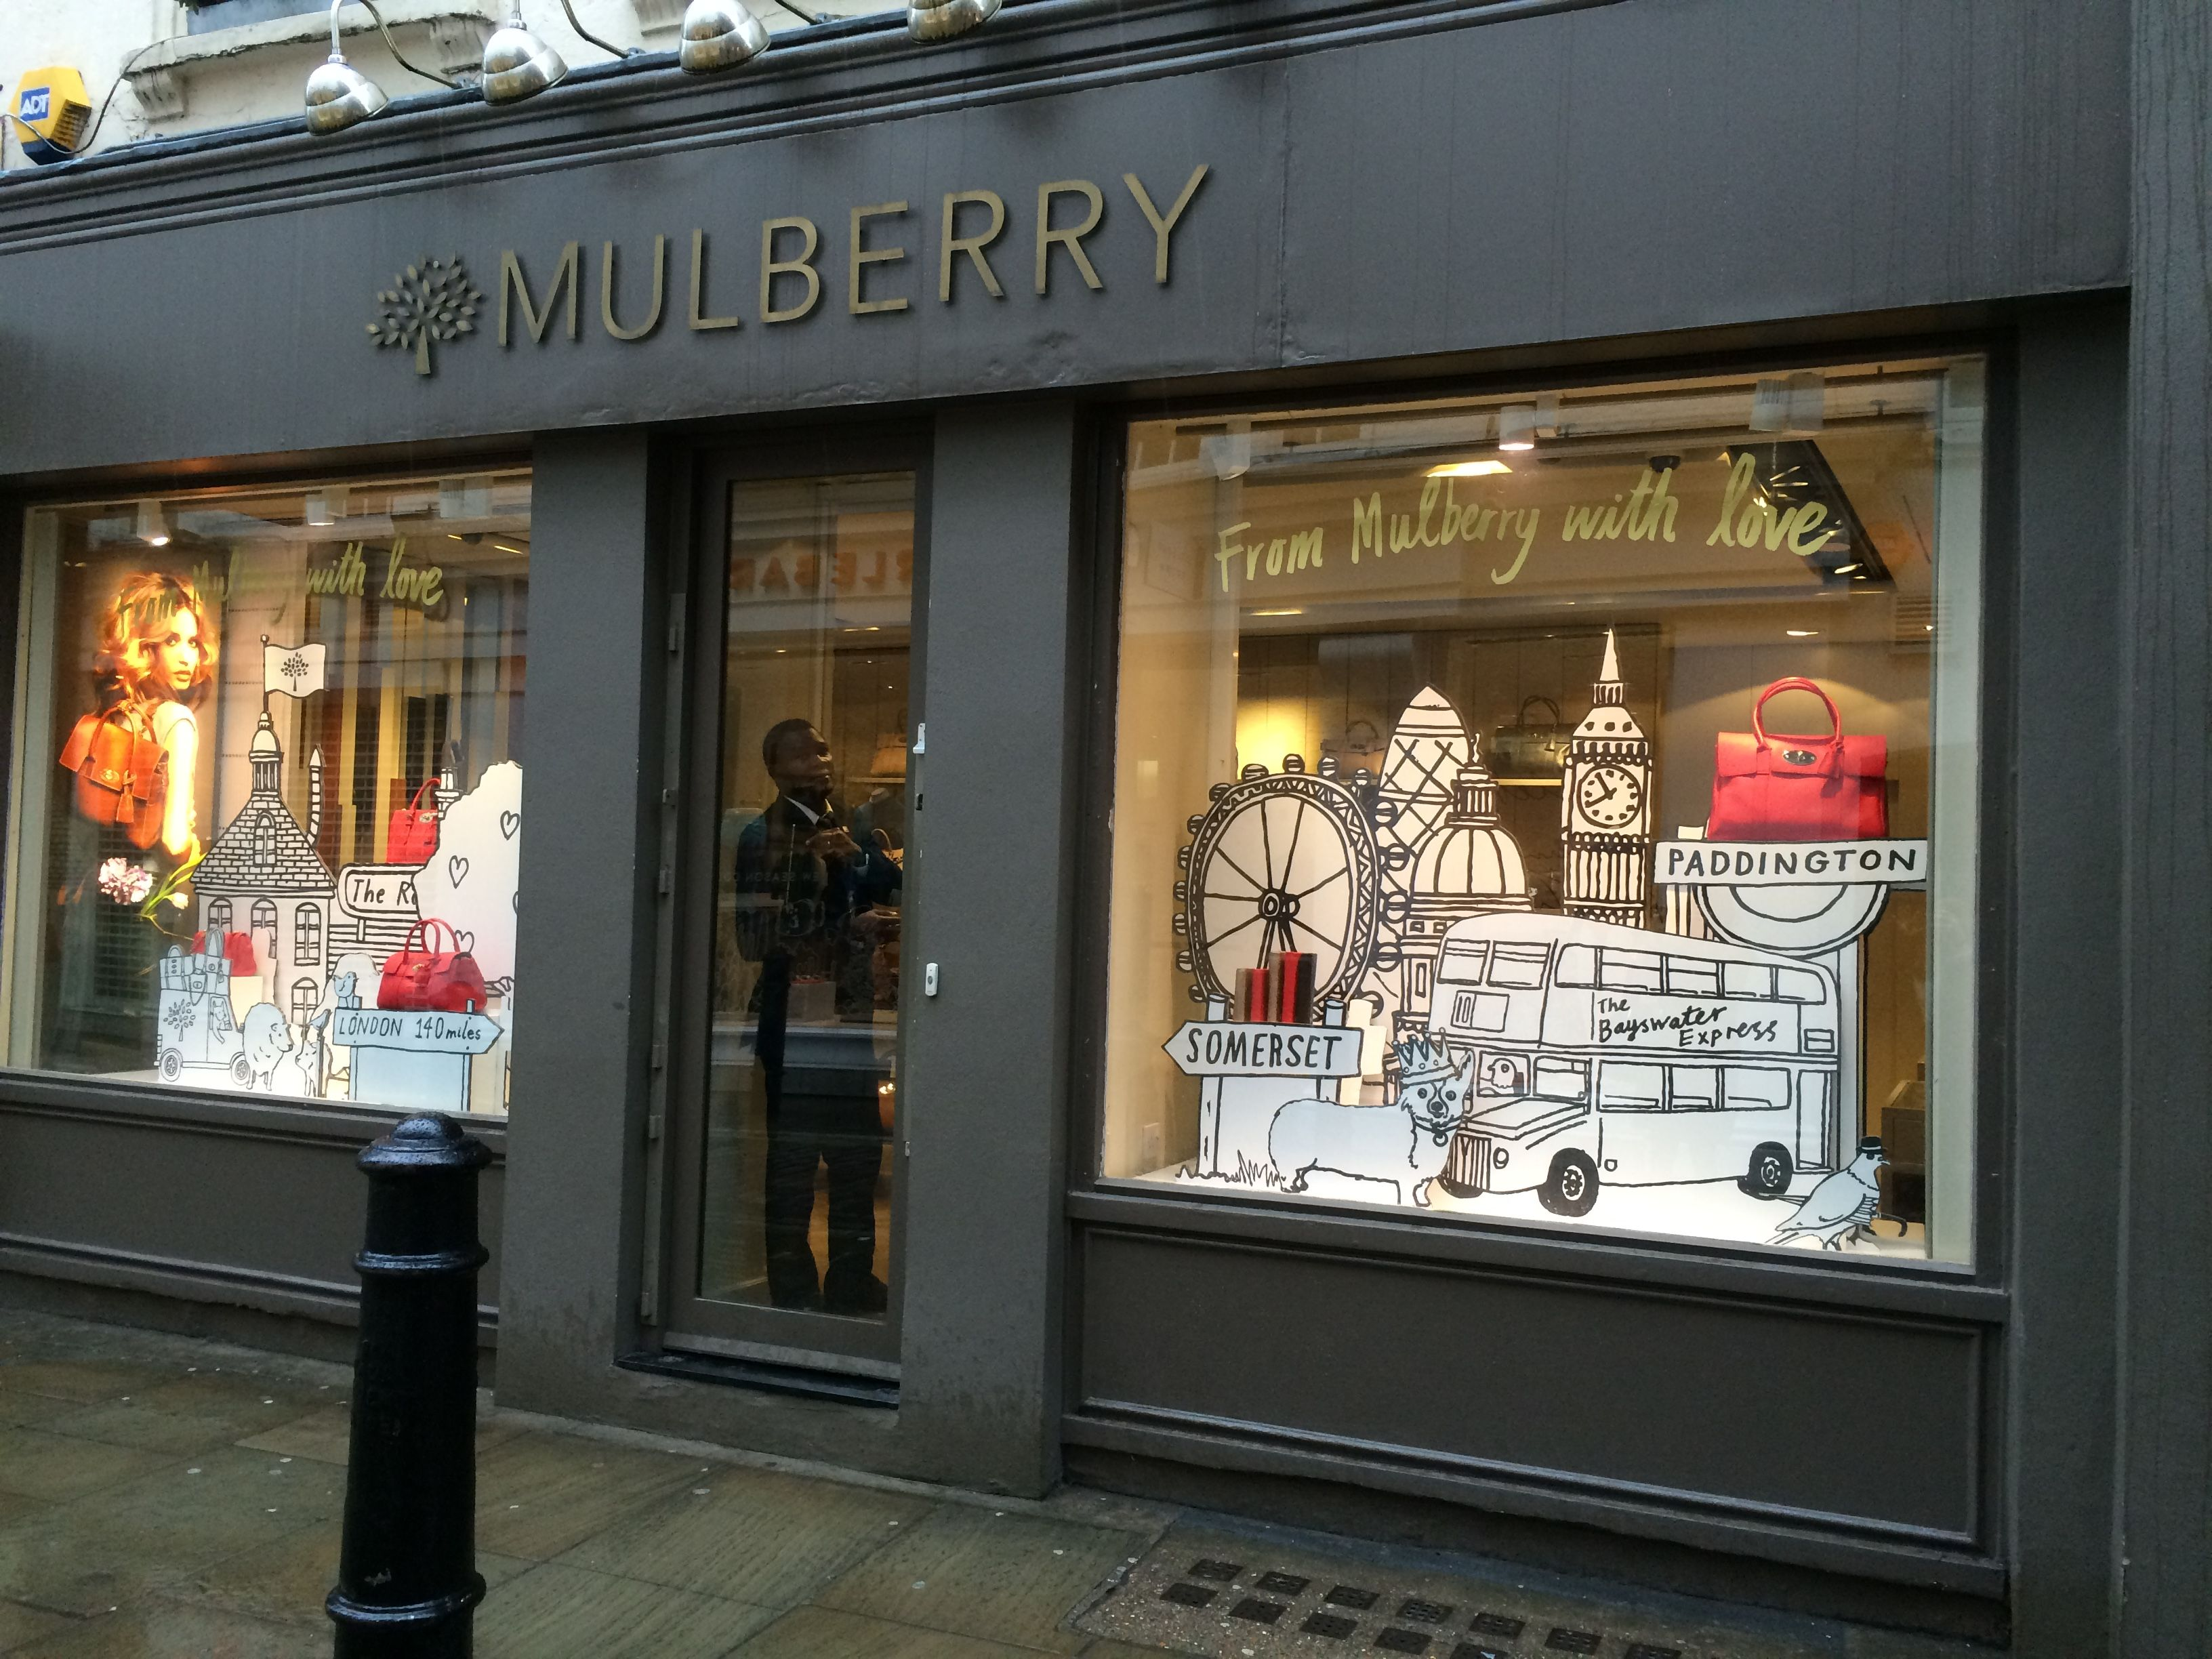 1fa850a553c Mulberry in Covent Garden- I enjoy this display for Mulberry from the  window because it tells a story and uses the bags in the story to show the  product.